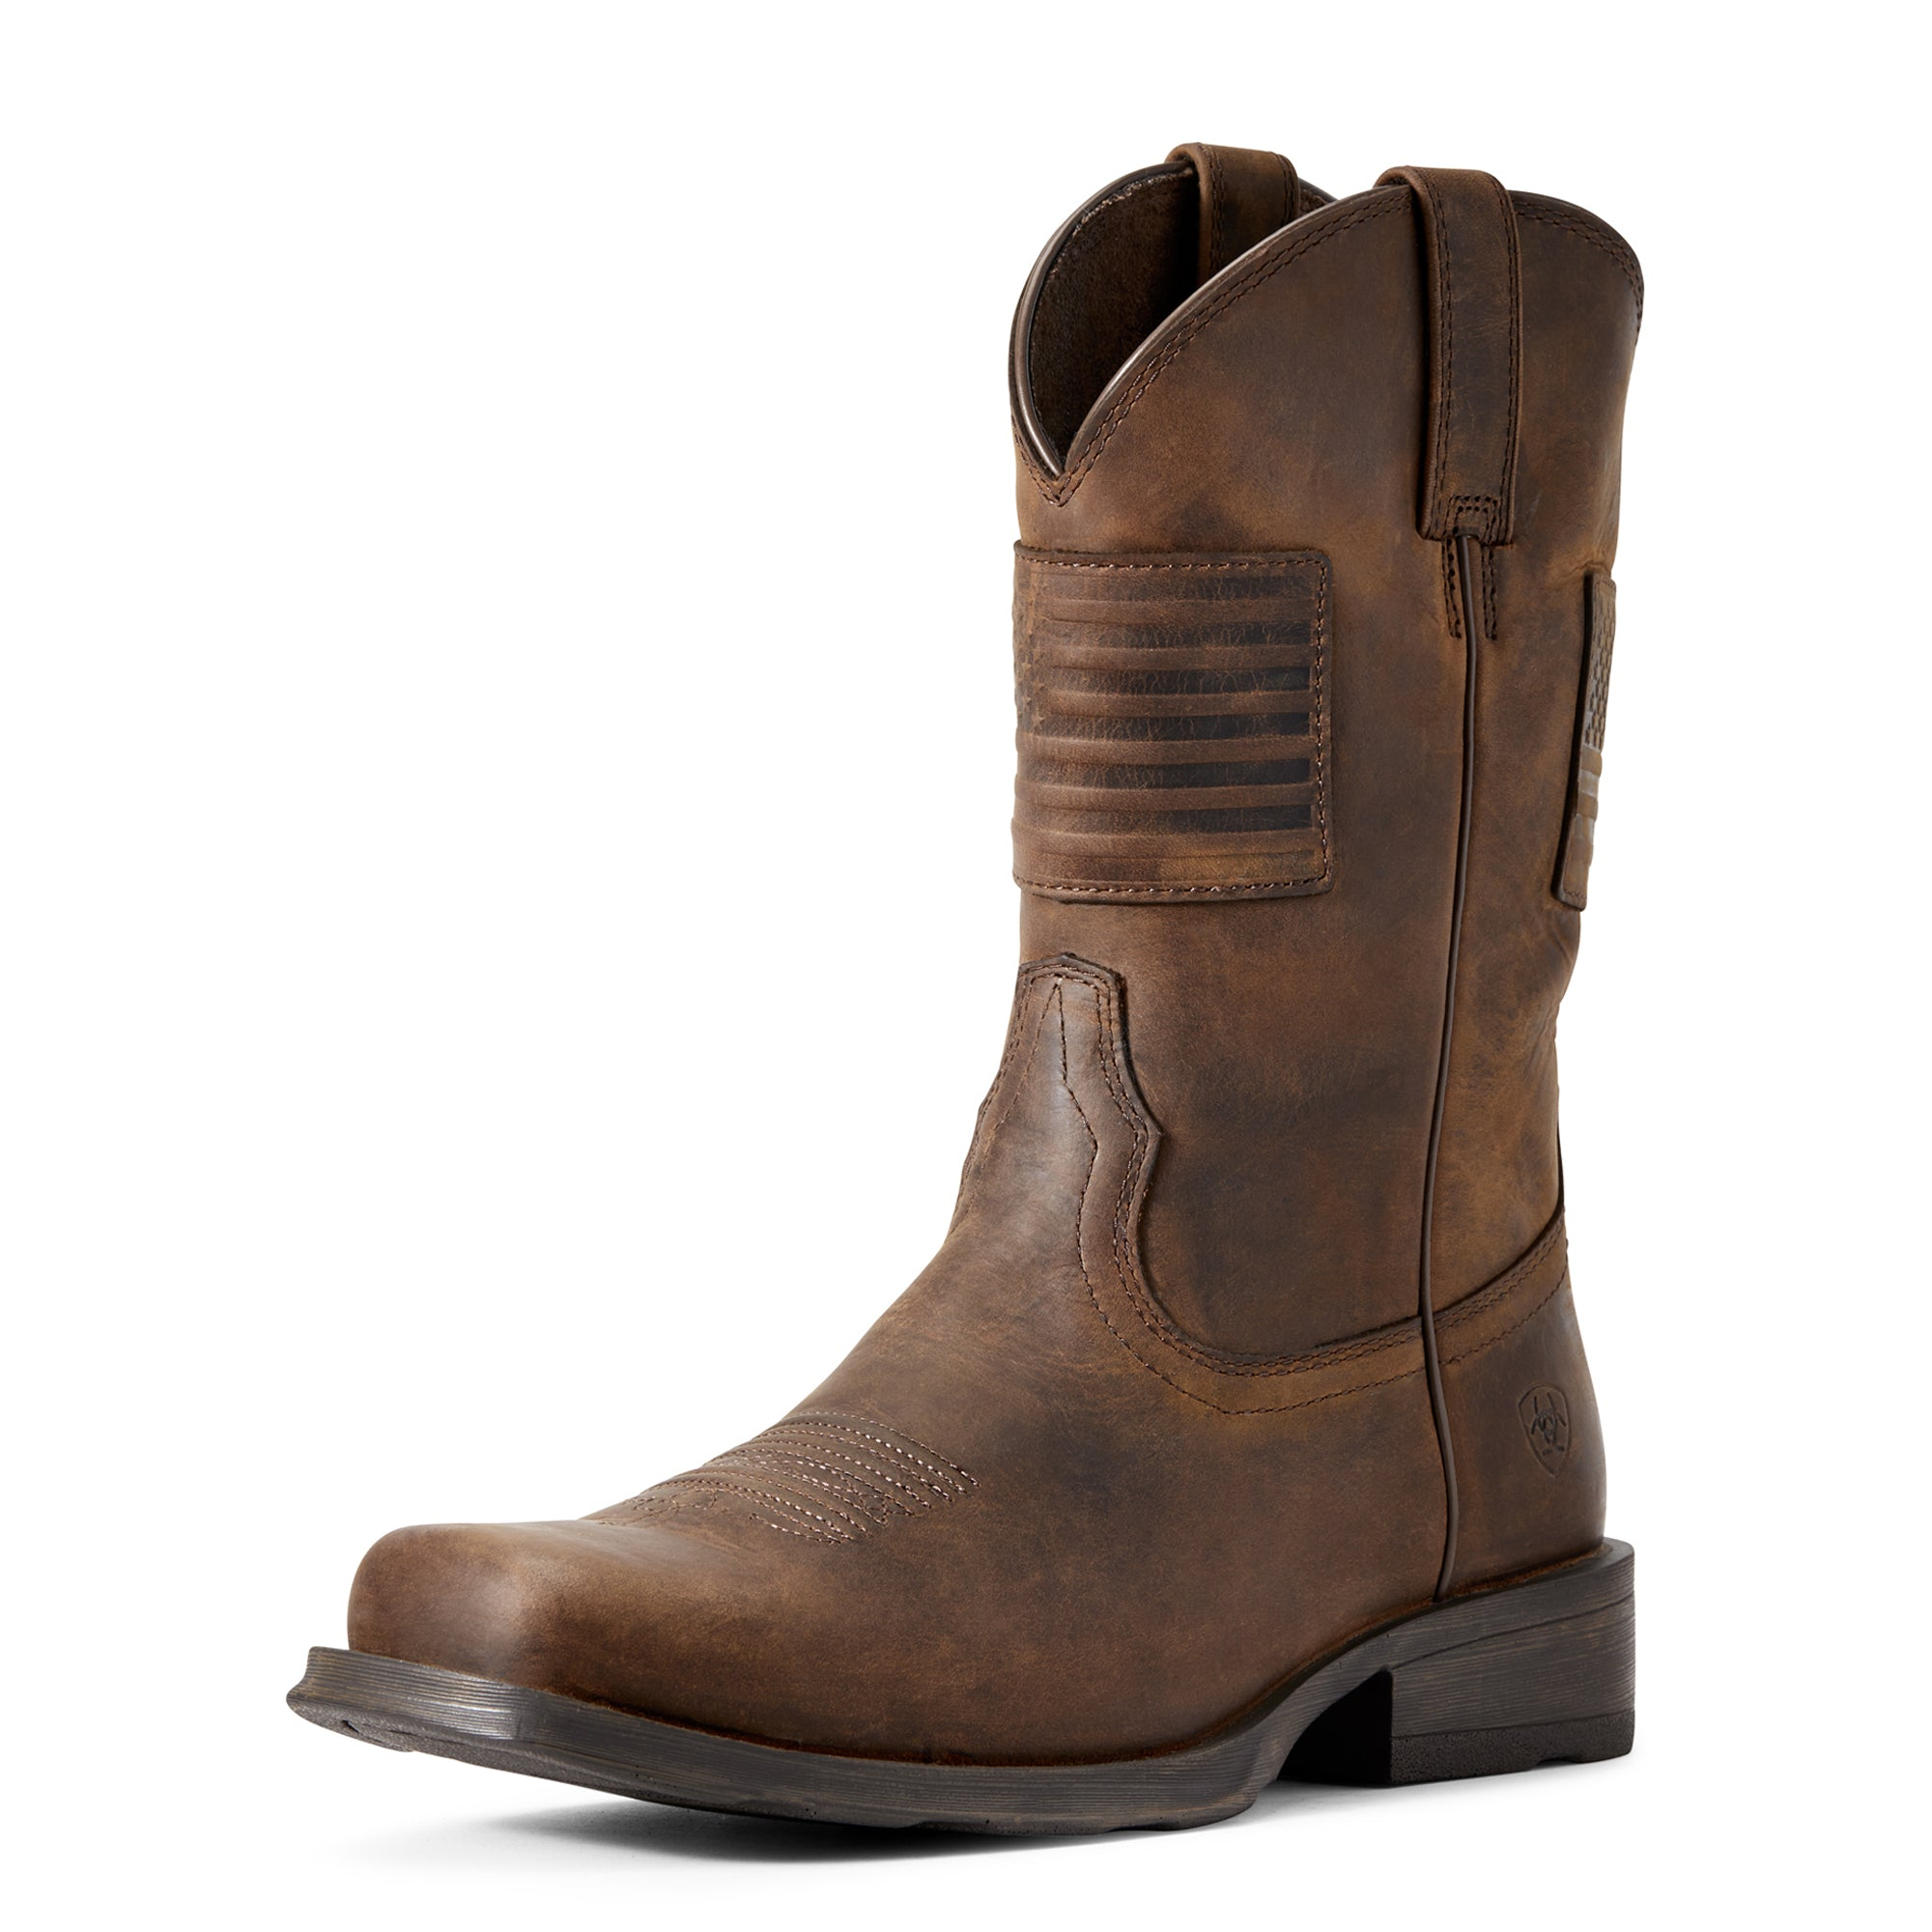 'Ariat' 10029692 - Men's Rambler Patriot - Brown